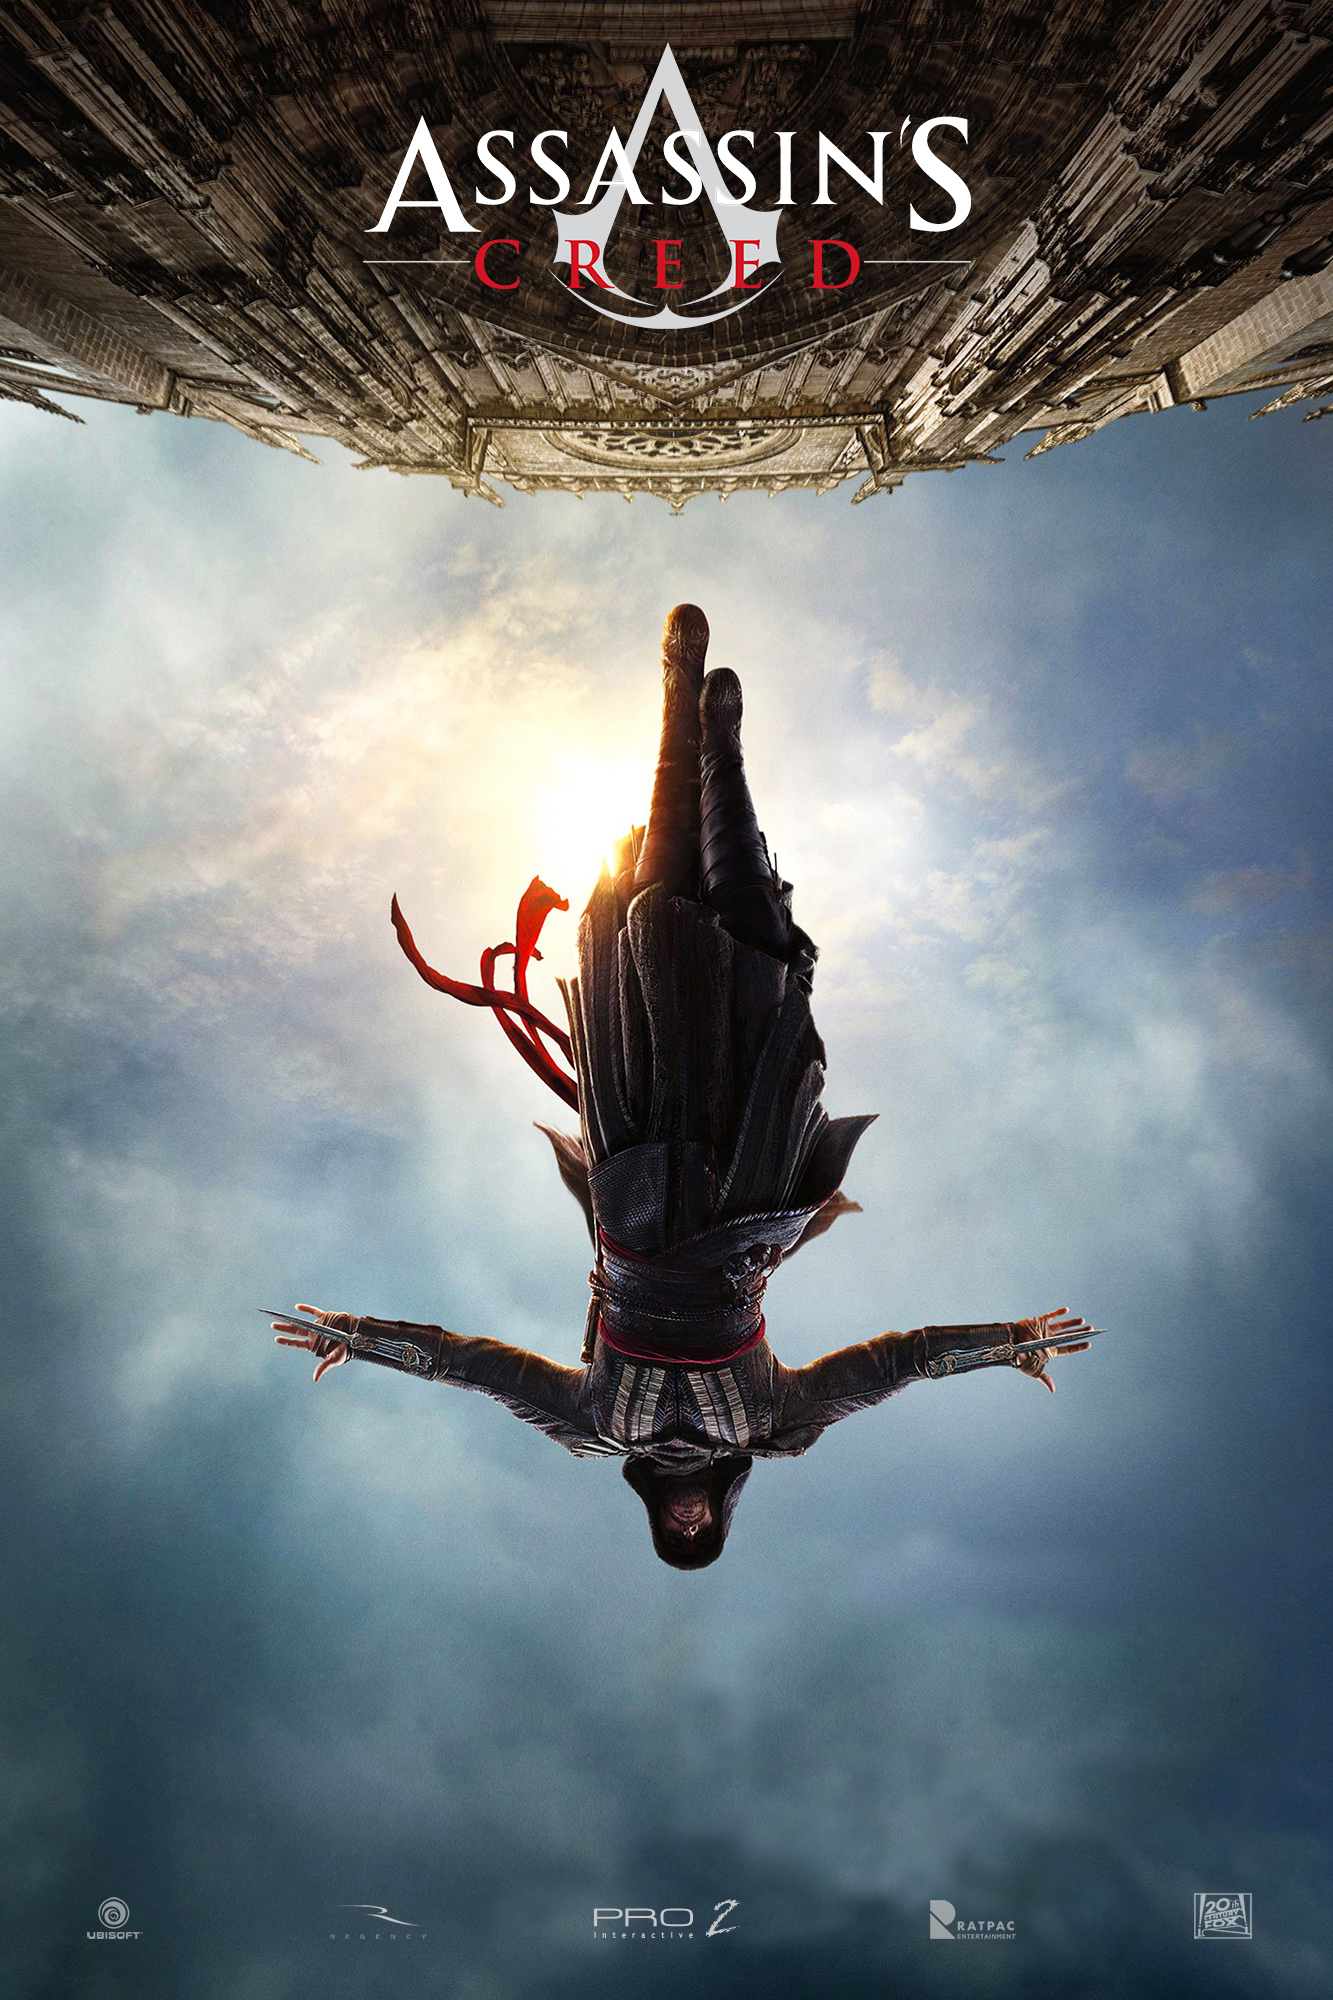 Assassin S Creed Wall Poster Pro 2